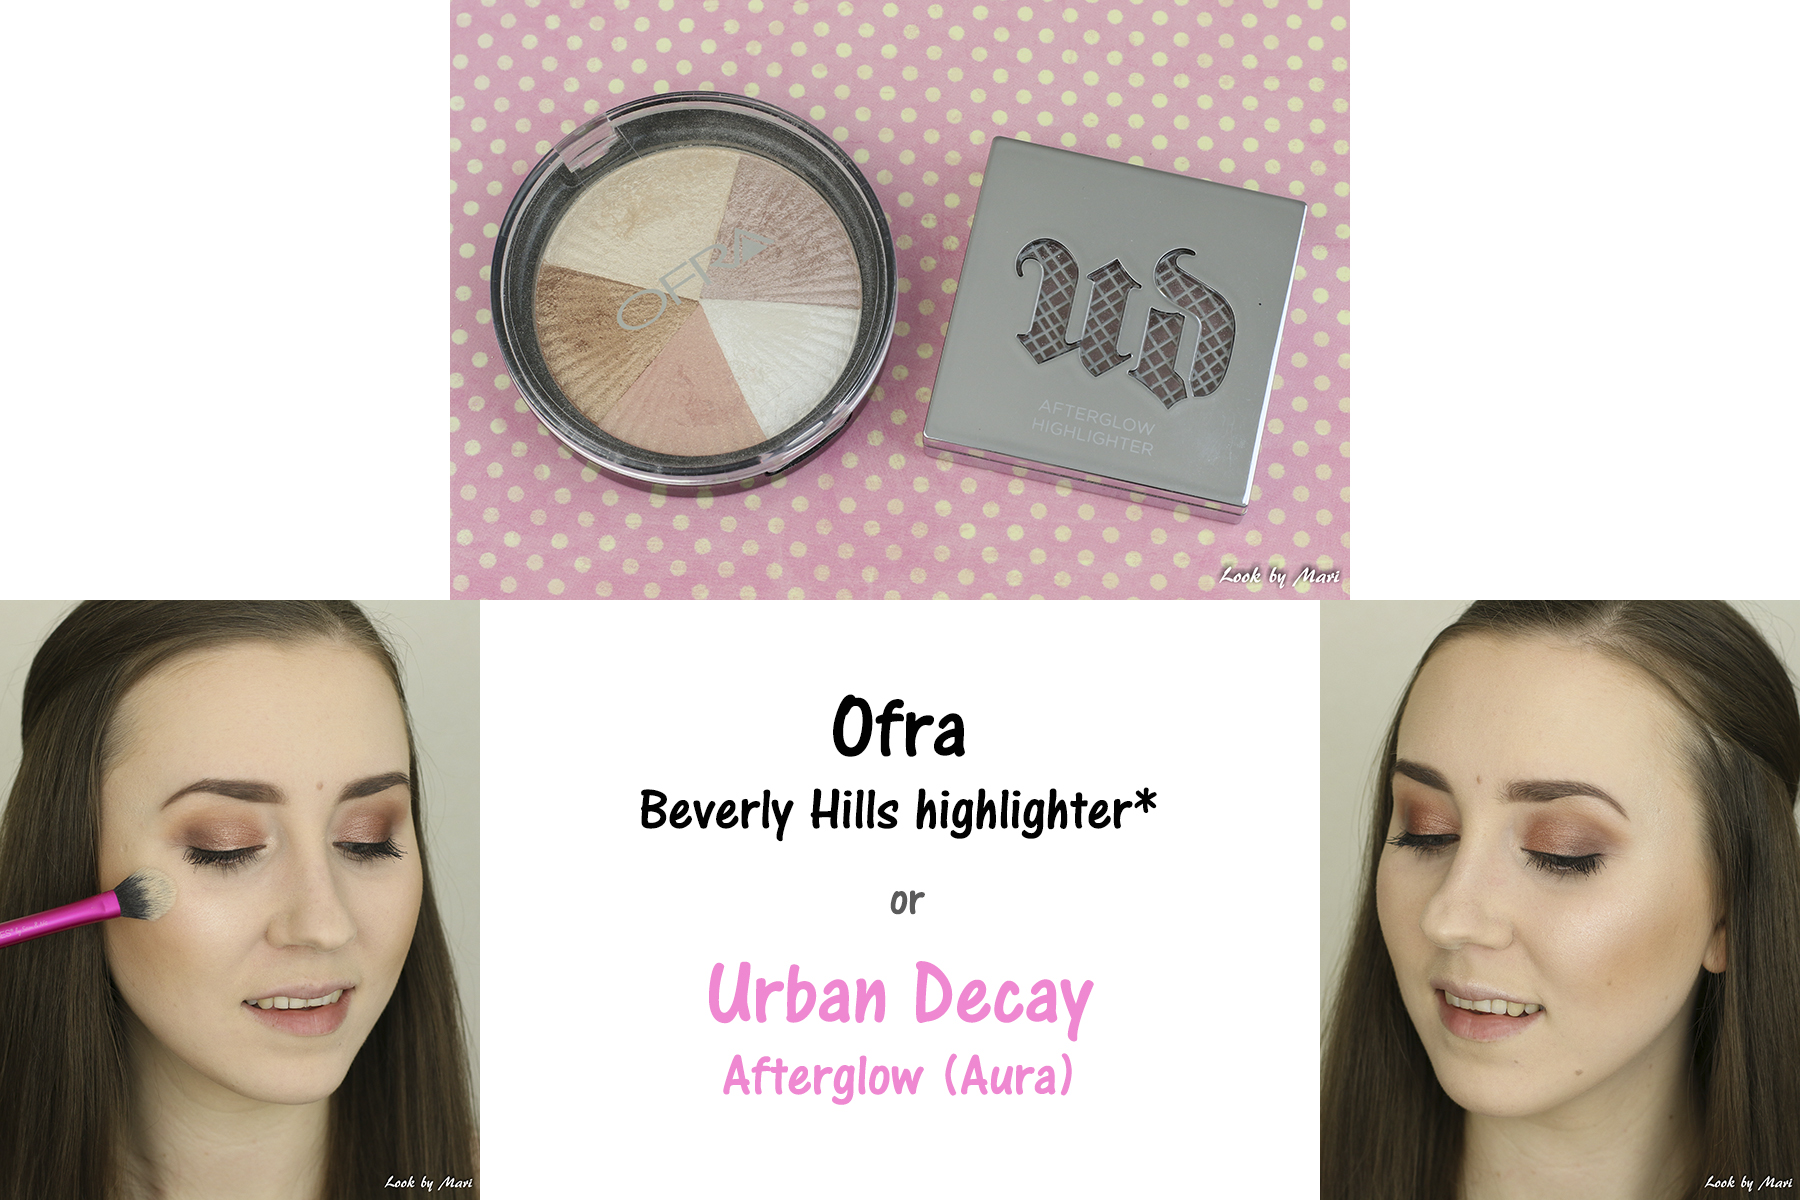 15 ofra beverly hills highlighter review swatches urban decay afterglow aura